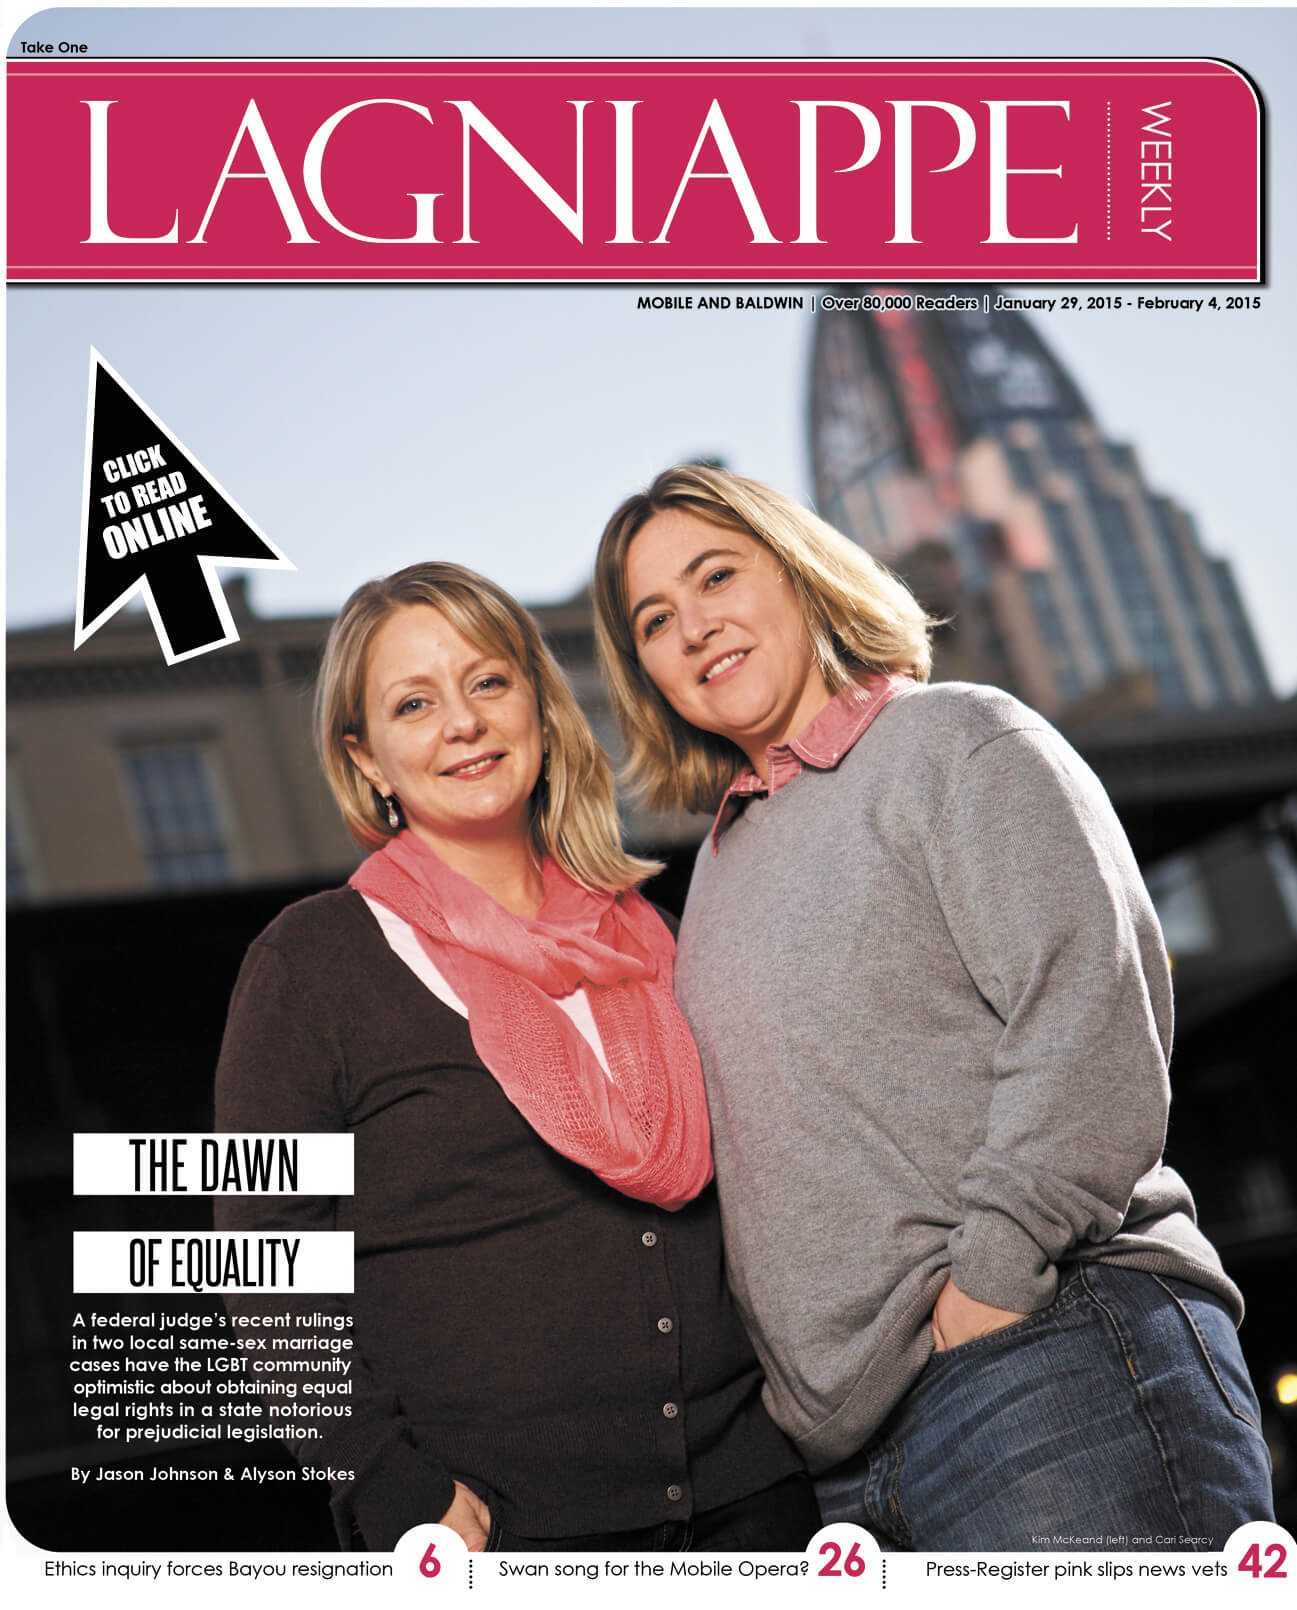 Lagniappe Jan. 29-Feb. 4, 2015